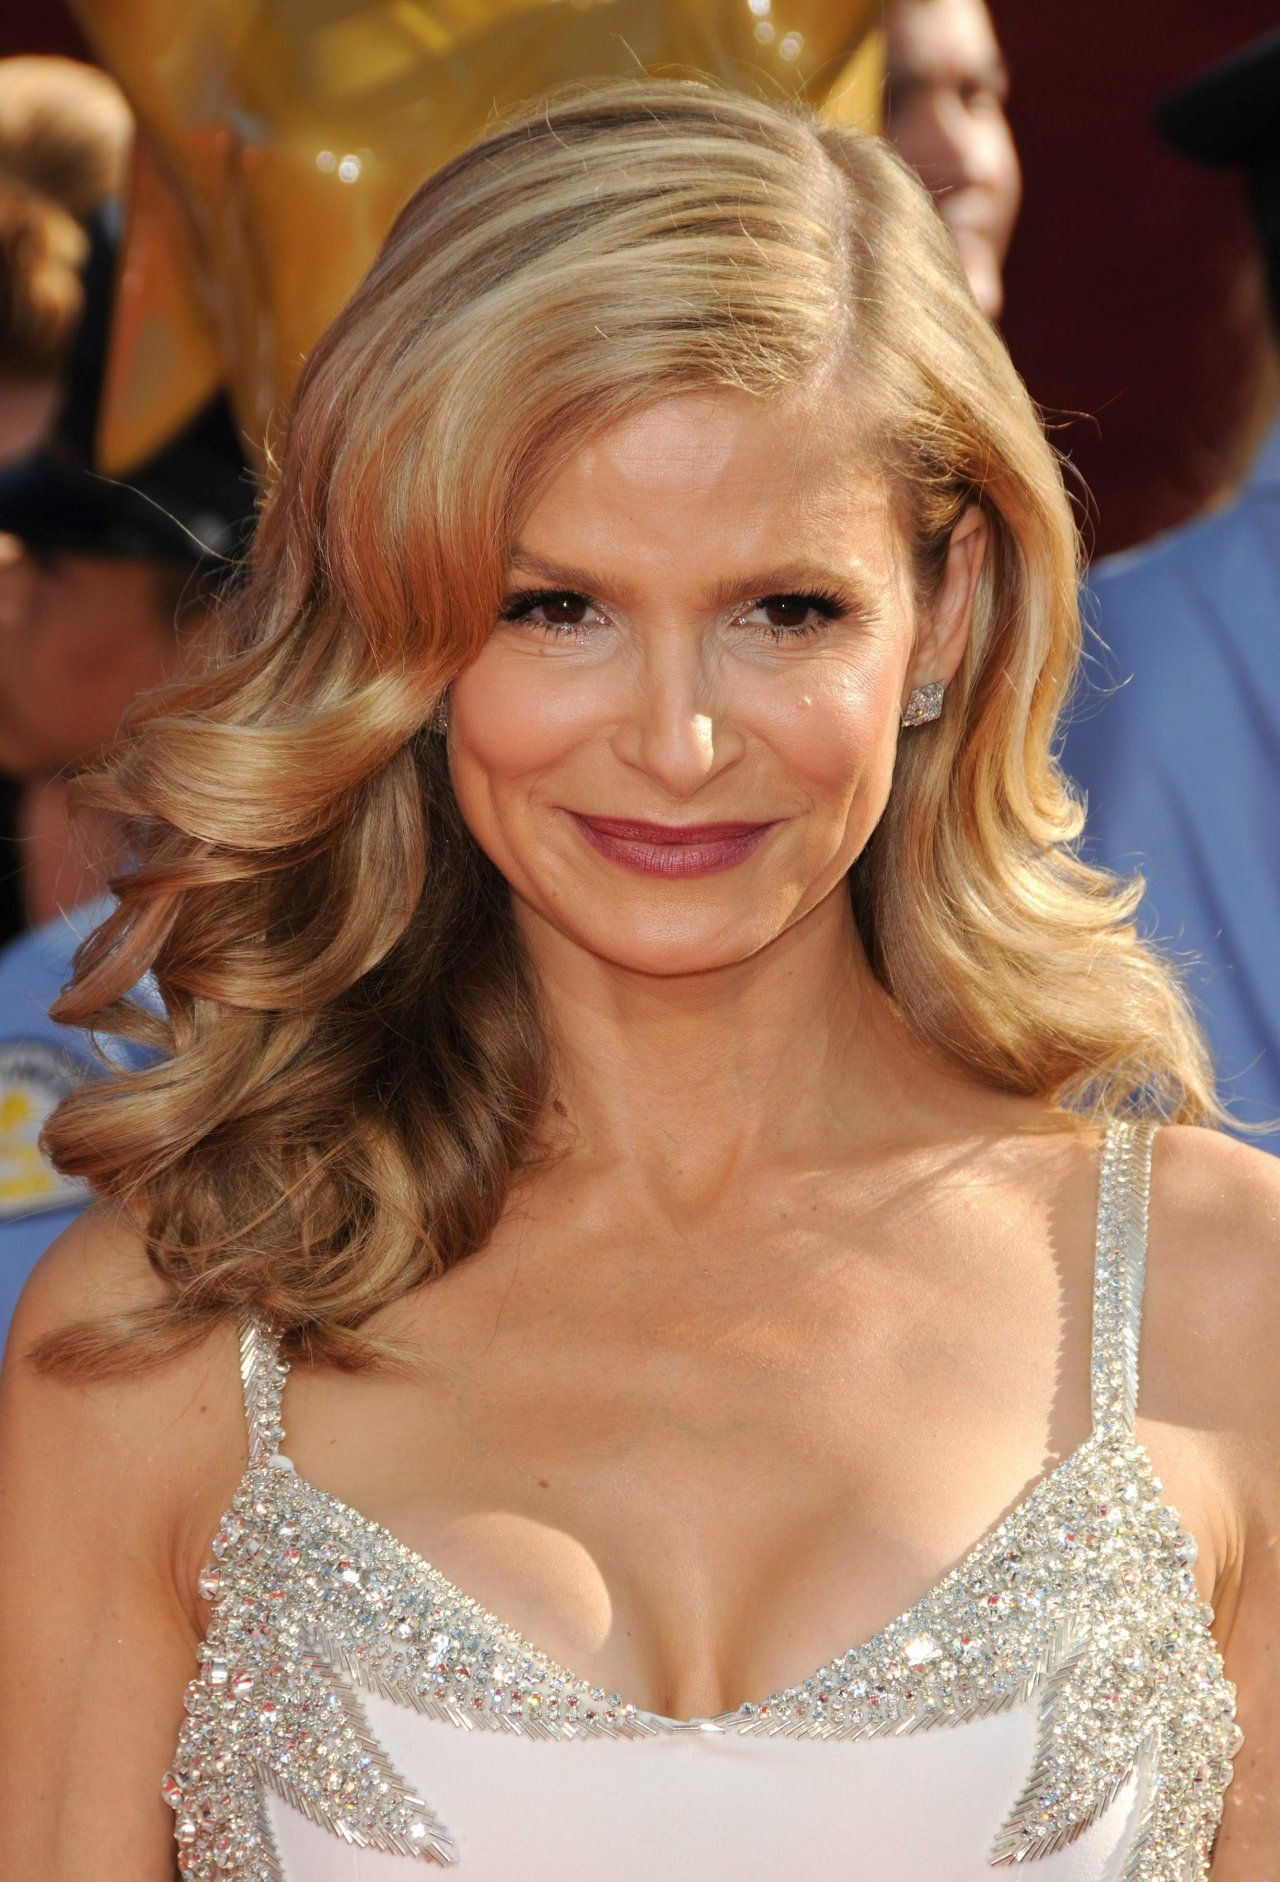 kyra sedgwick the closer